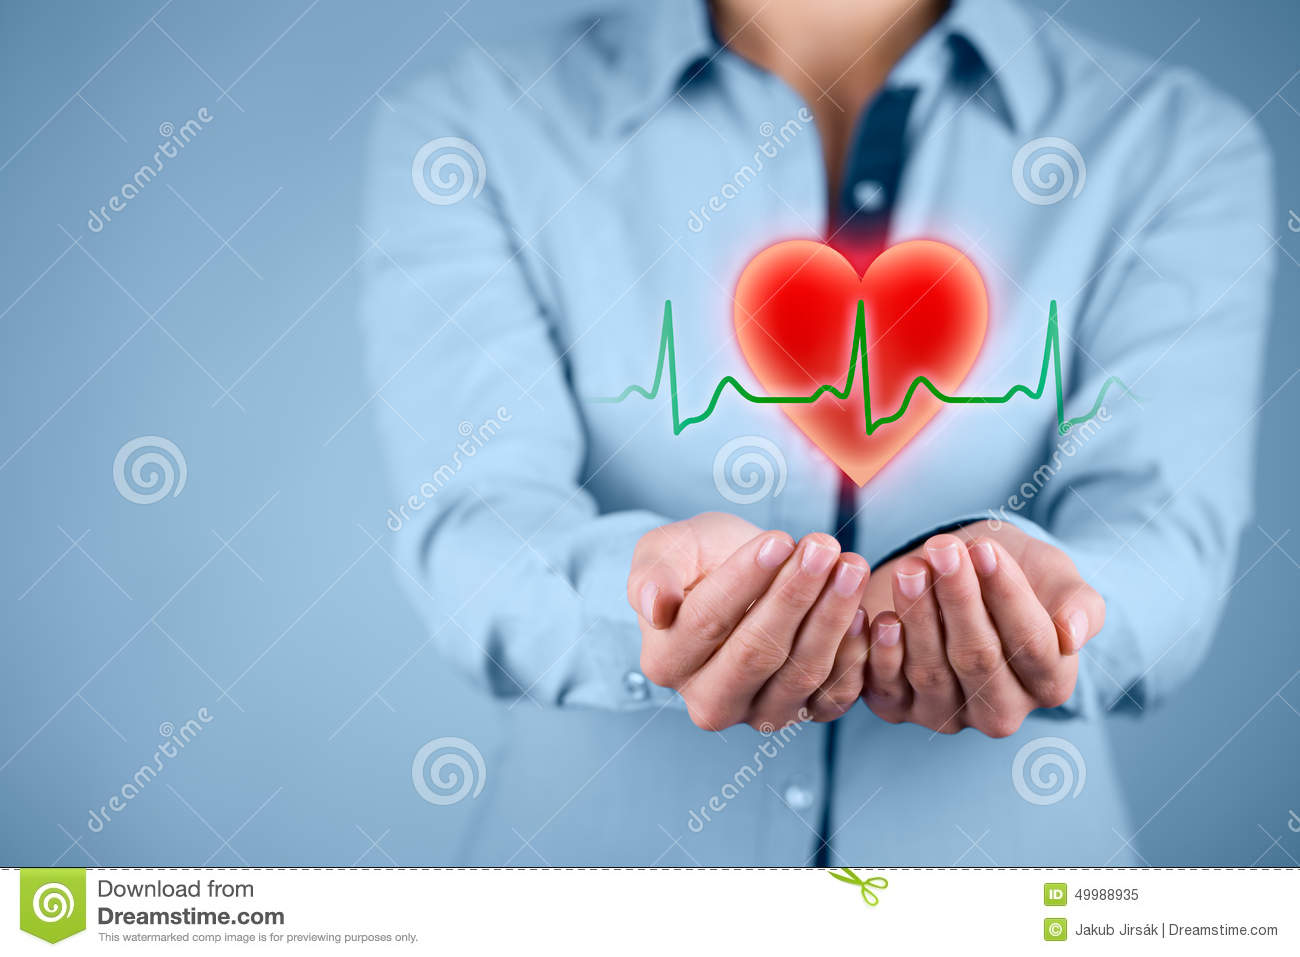 Protect heart healthcare